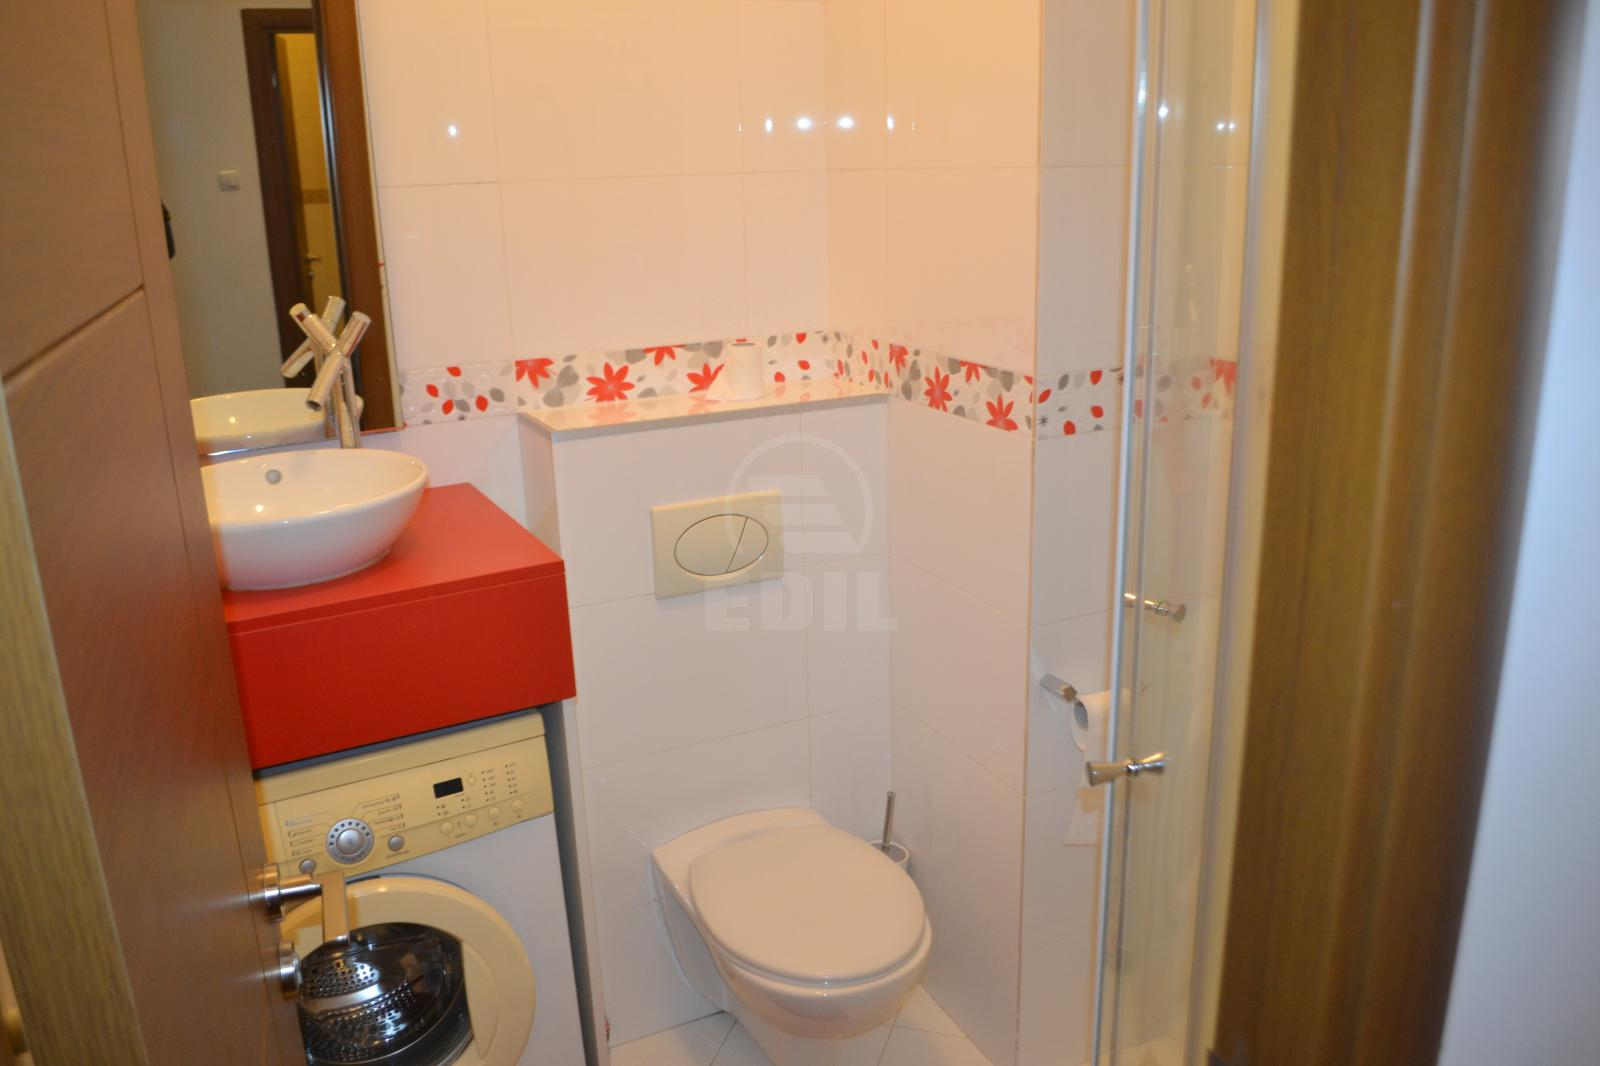 Apartment for rent 3 rooms, APCJ271208-9